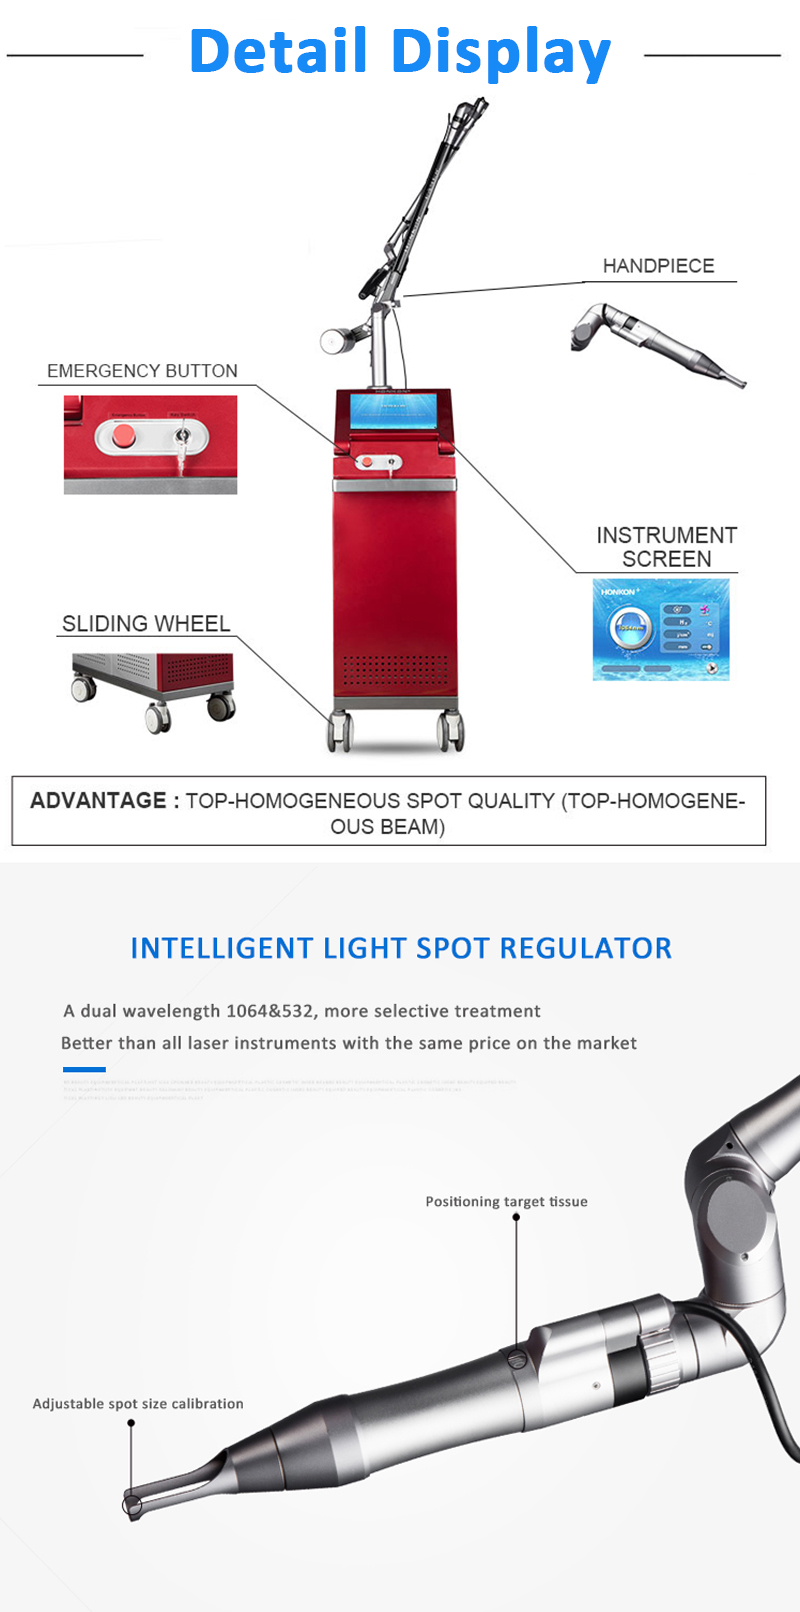 1064nm Q-Switched ND:YAG Laser, Laser Tattoo Removal Machine, Pigment Lesions Removal Machine, 1064QGH02